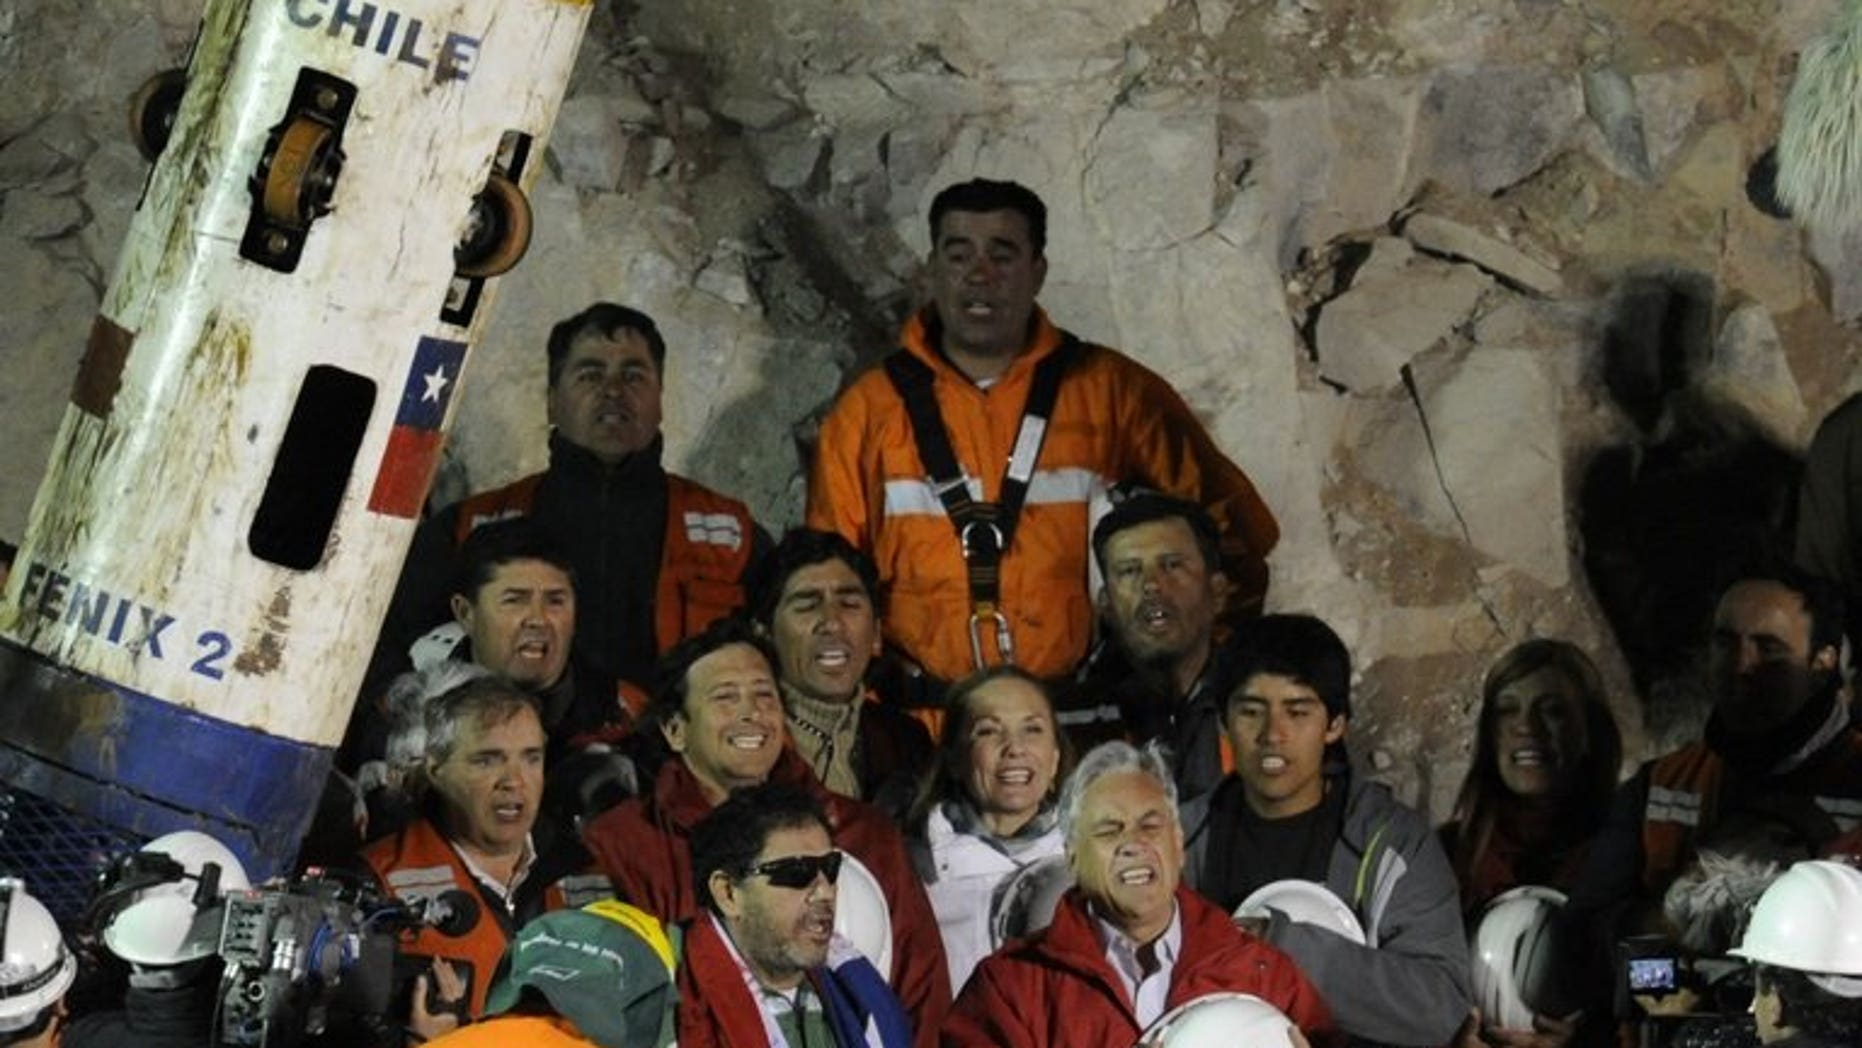 The last of the 33 Chilean miners to be rescued, Luis Urzua (C-L), signs the national anthem alongside Chilean President Sebastian Pinera (C-R) and rescue workers, near Copiapo, Chile on October 13, 2010. Three years after 33 trapped Chilean miners were rescued in an operation that captivated the world, an investigation into the site's management closed without any charges.